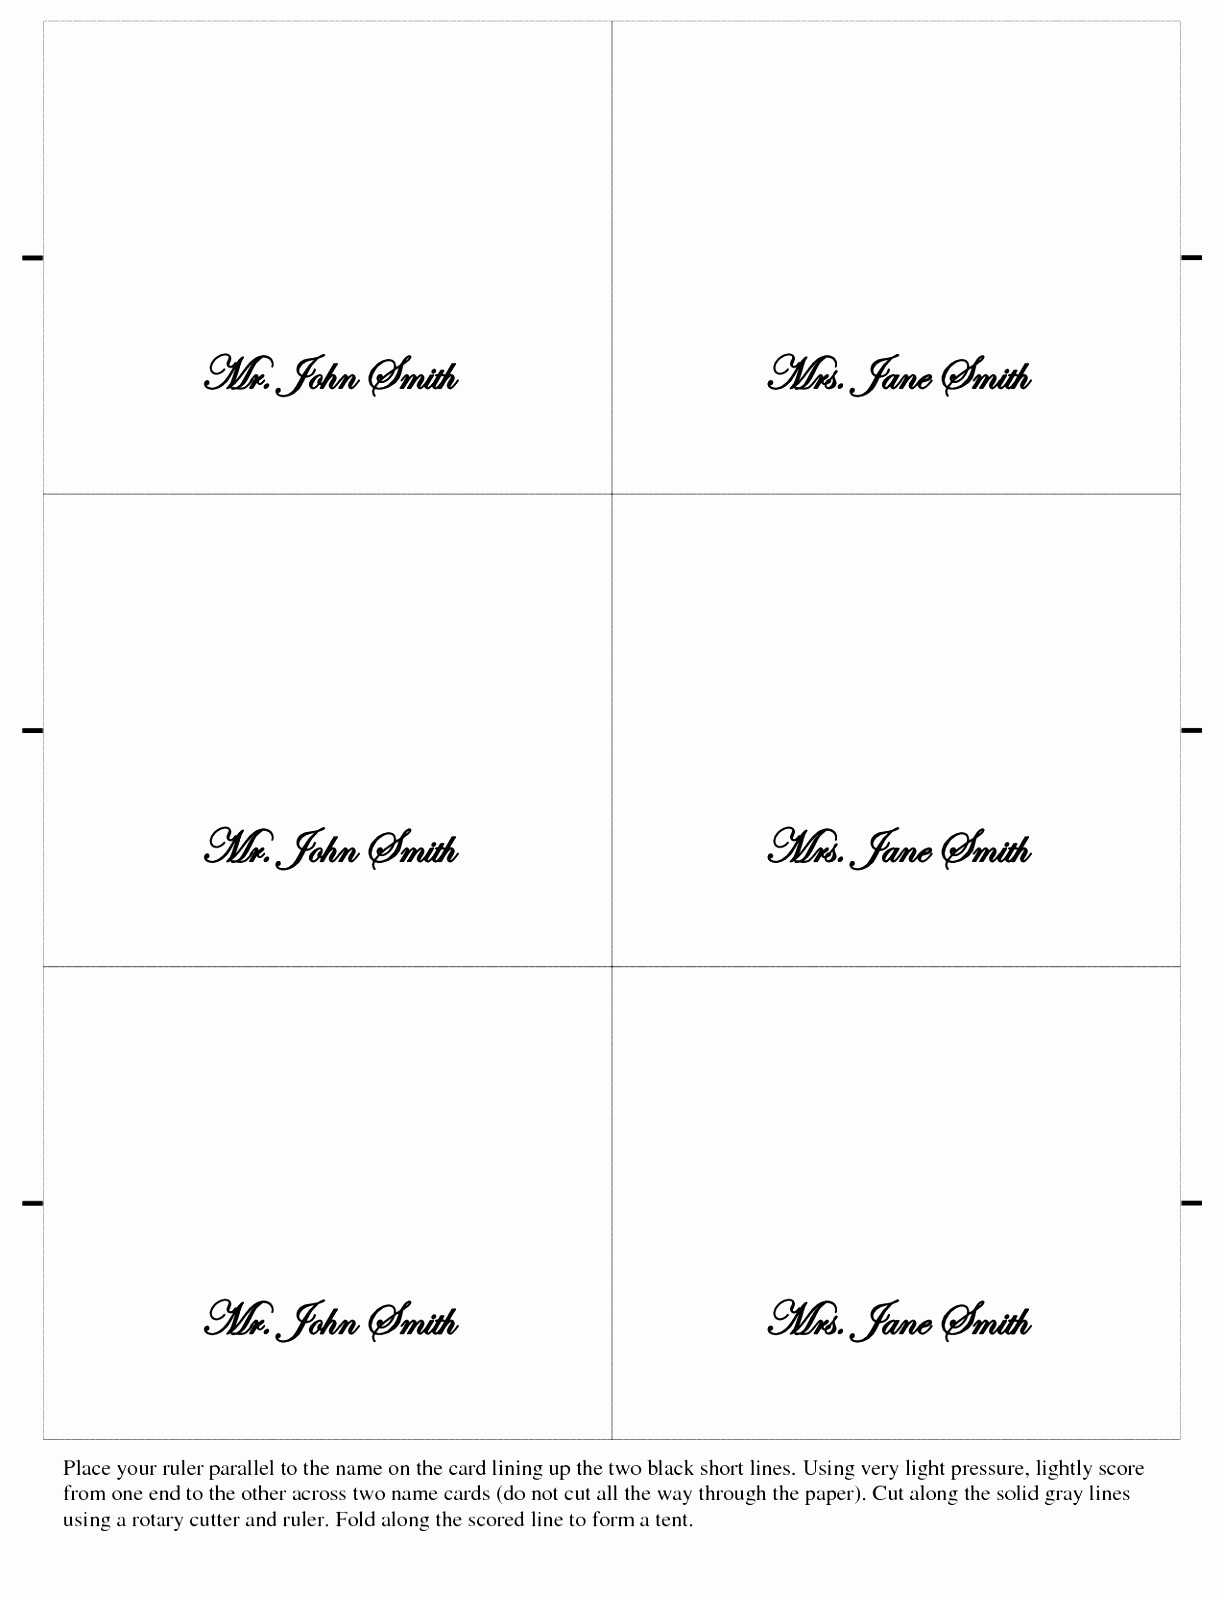 Place Card Template Per Eet Landing Page Small Tent Within Free Place Card Templates 6 Per Page